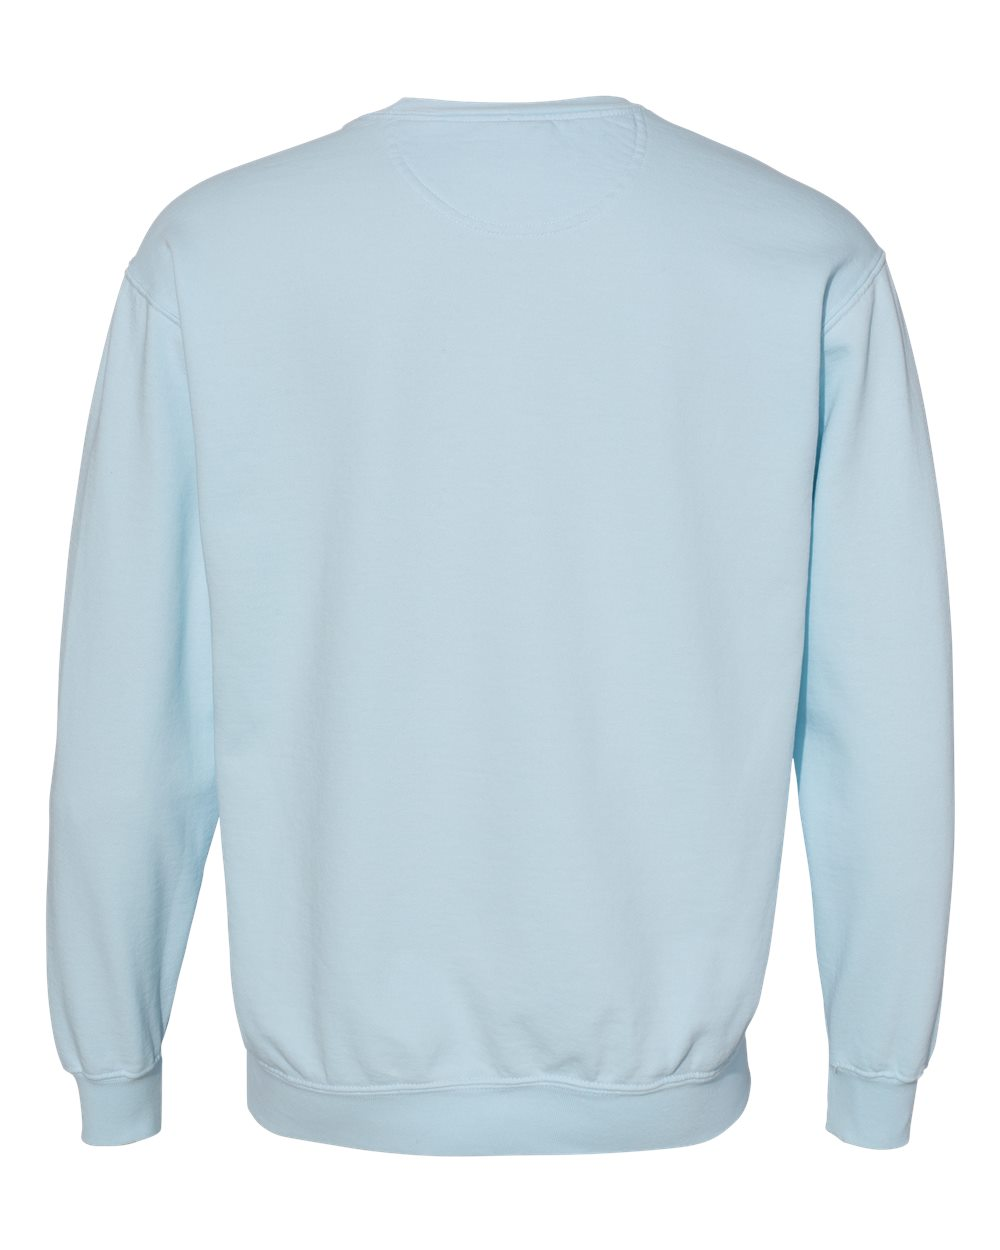 Comfort-Colors-Mens-Garment-Dyed-Ringspun-Crewneck-Sweatshirt-1566-up-to-3XL miniature 19